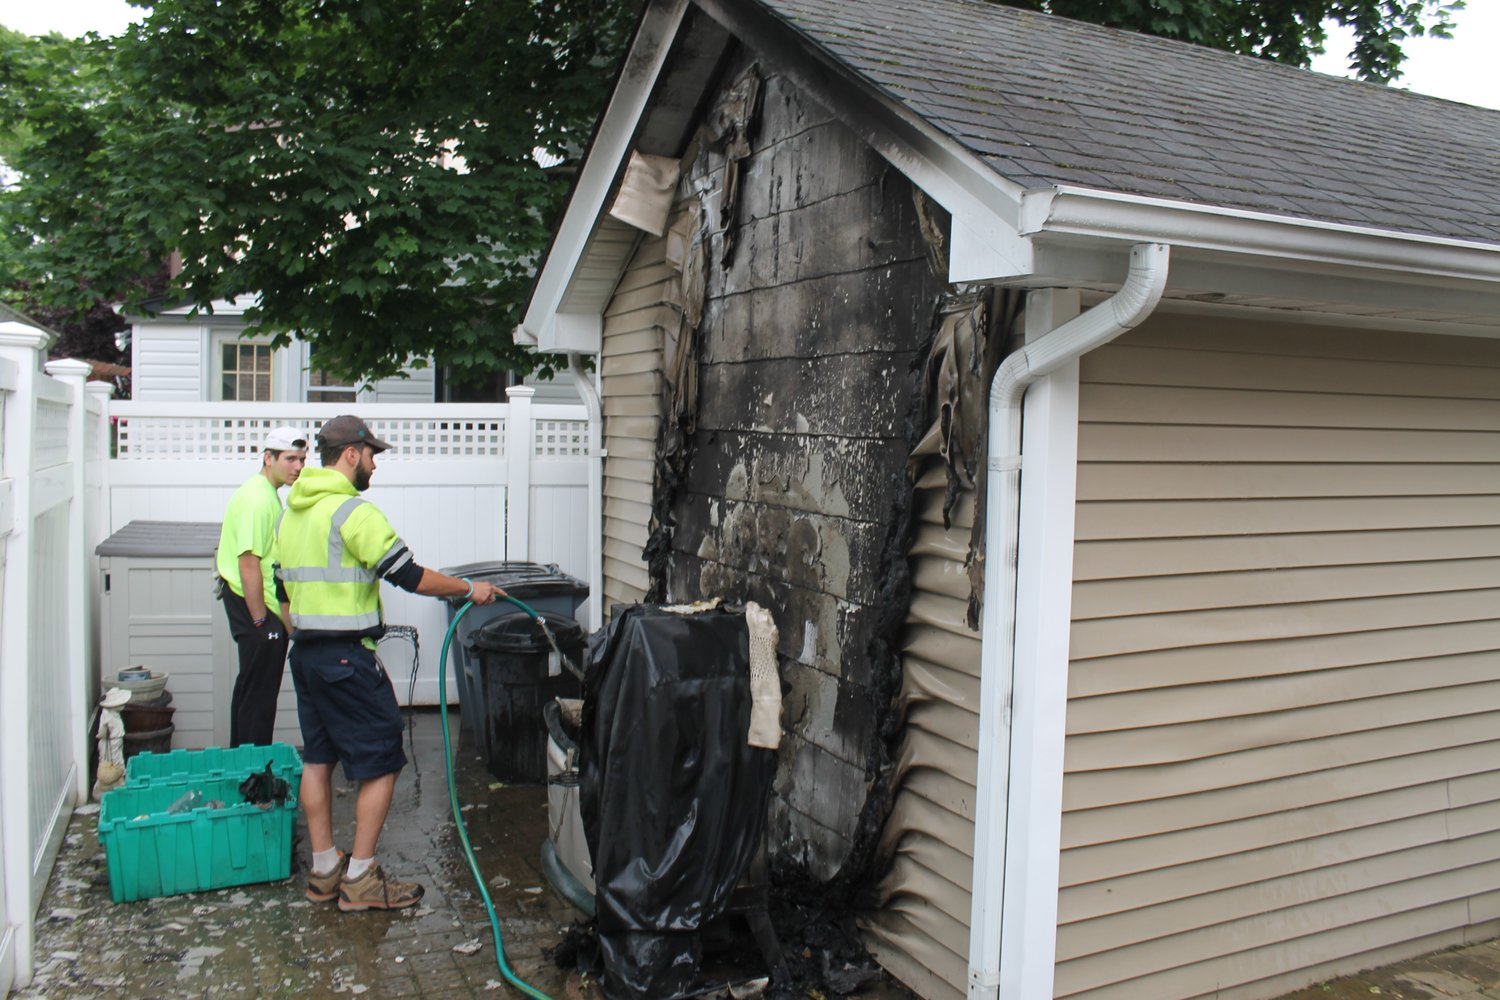 Lynbrook Department of Public Works employees Aidan Ryder, left, and Charlie Curcio helped extinguish a fire that was consuming the back of the garage of a house on Sherman Street and Blossom Heath Avenue.